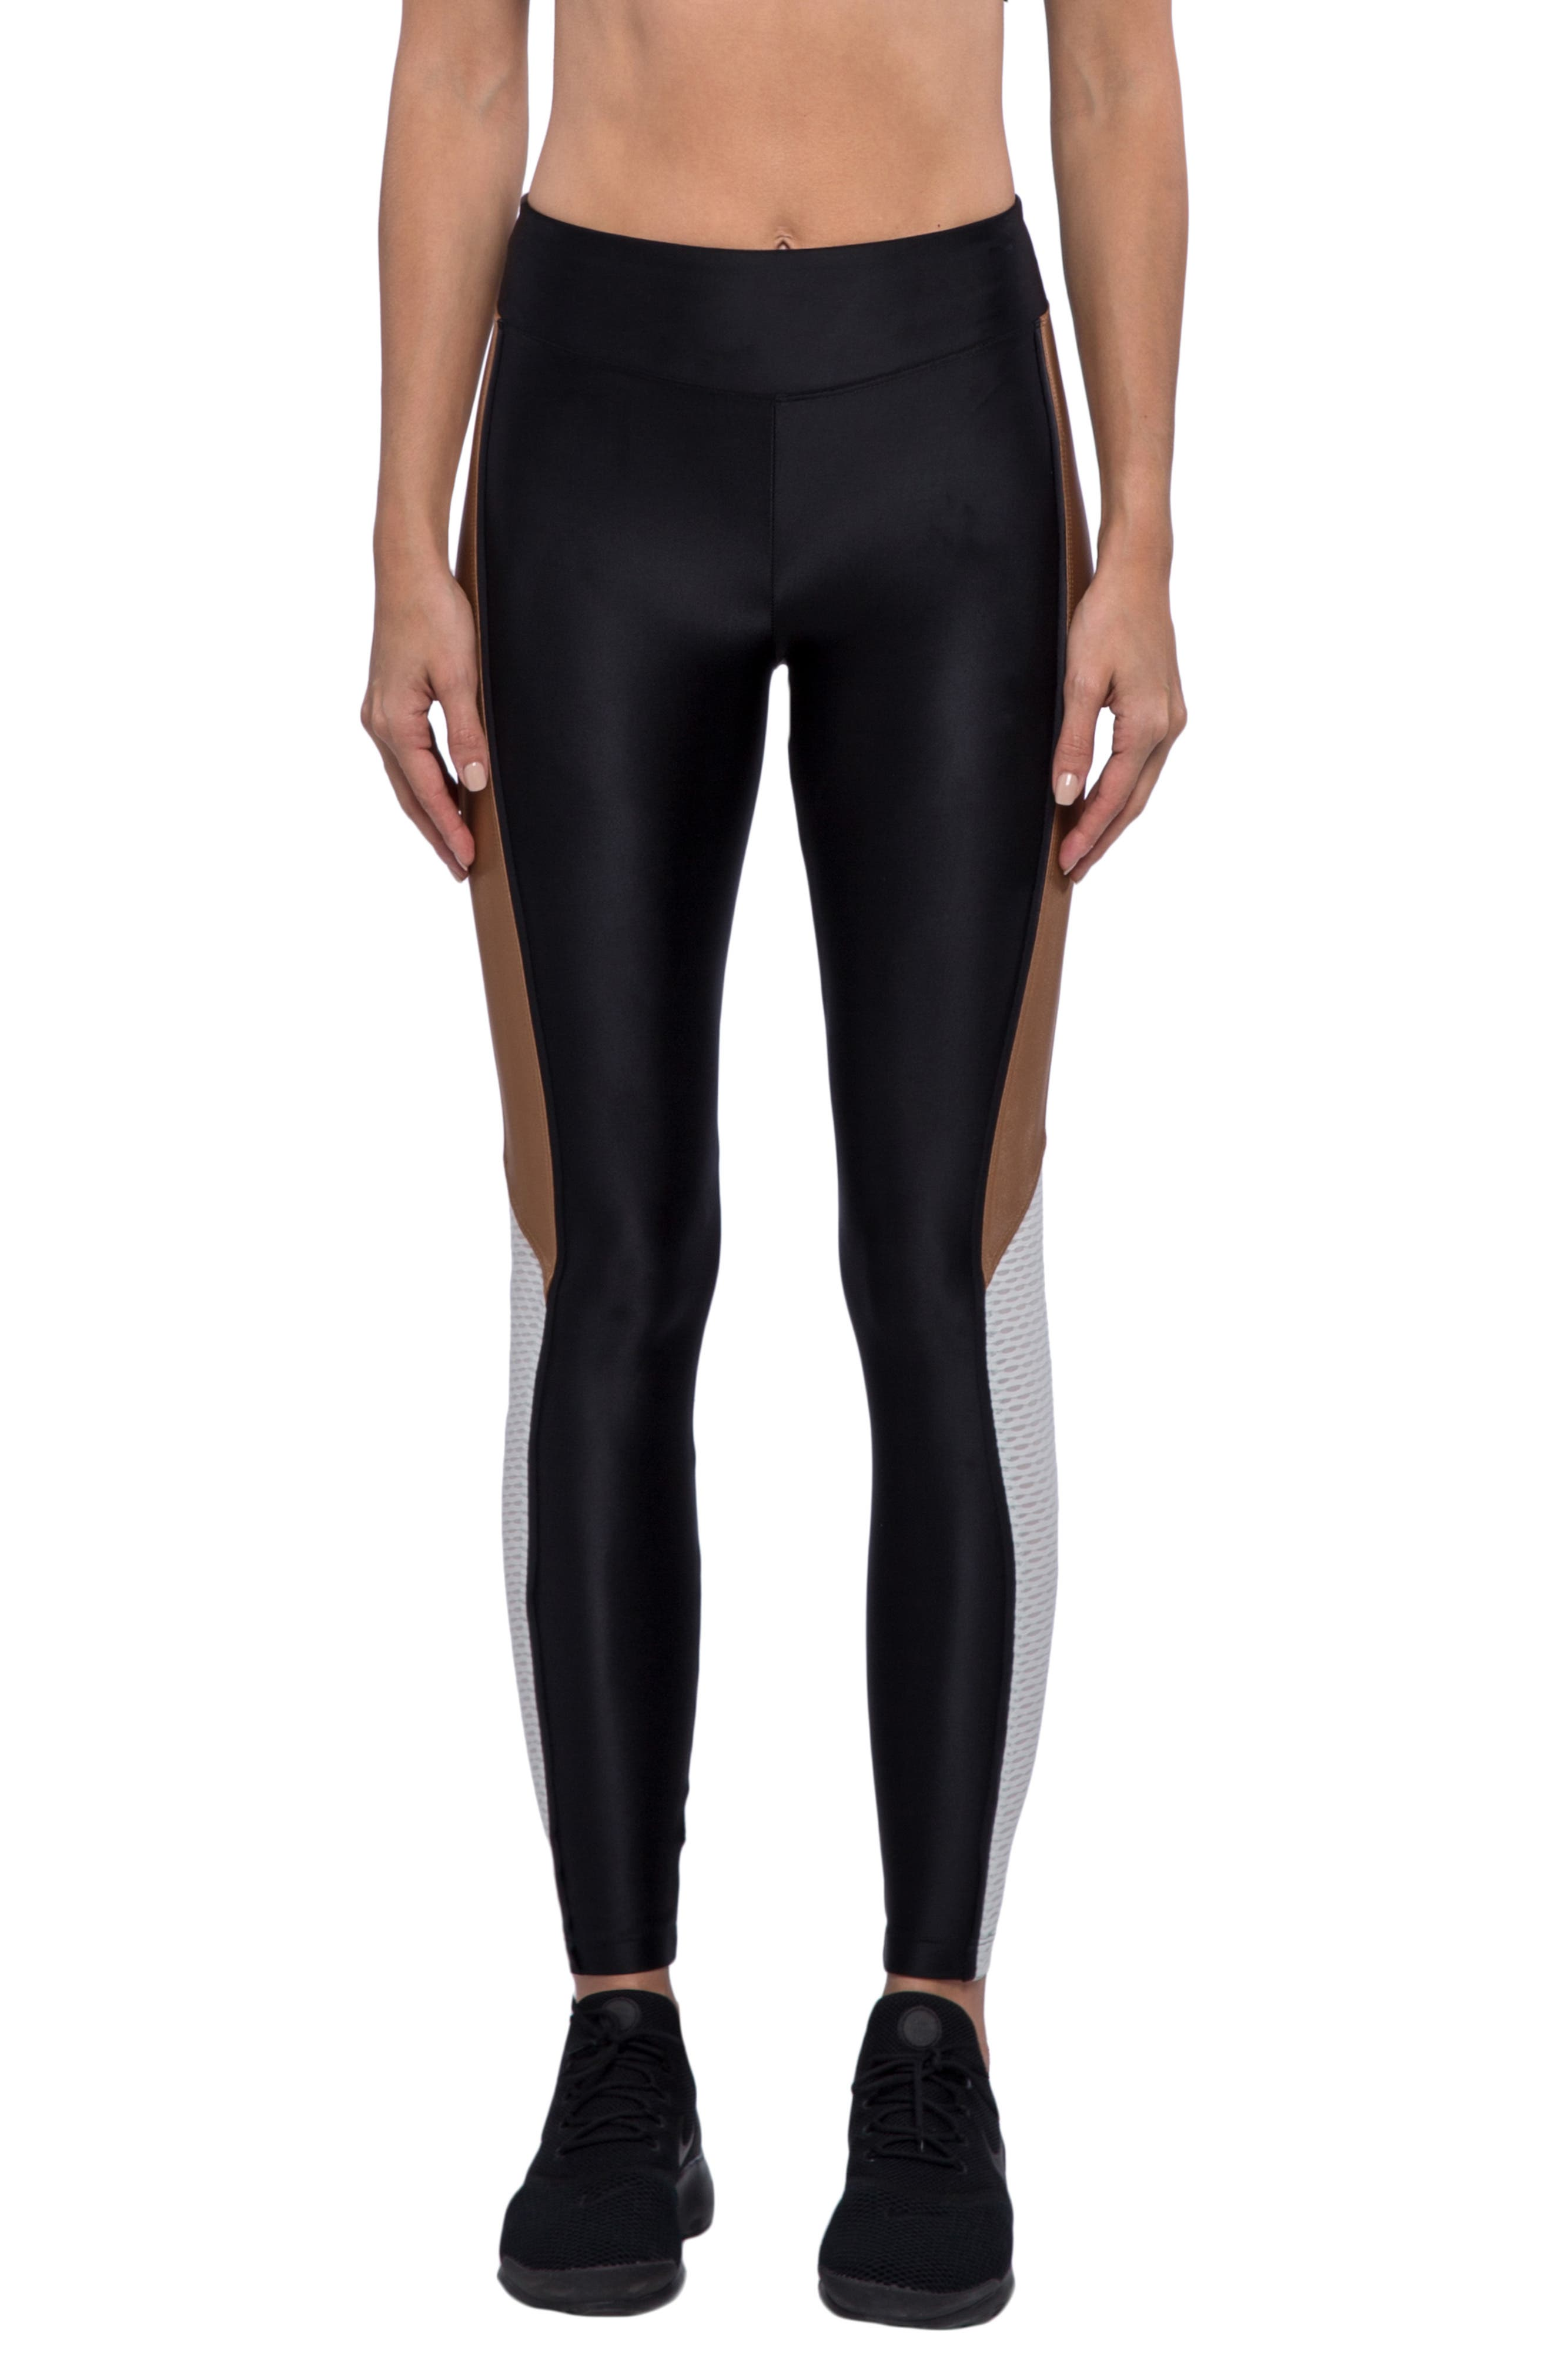 Serendipity Energy Leggings,                         Main,                         color, BLACK/ TOFFEE/ EGRET